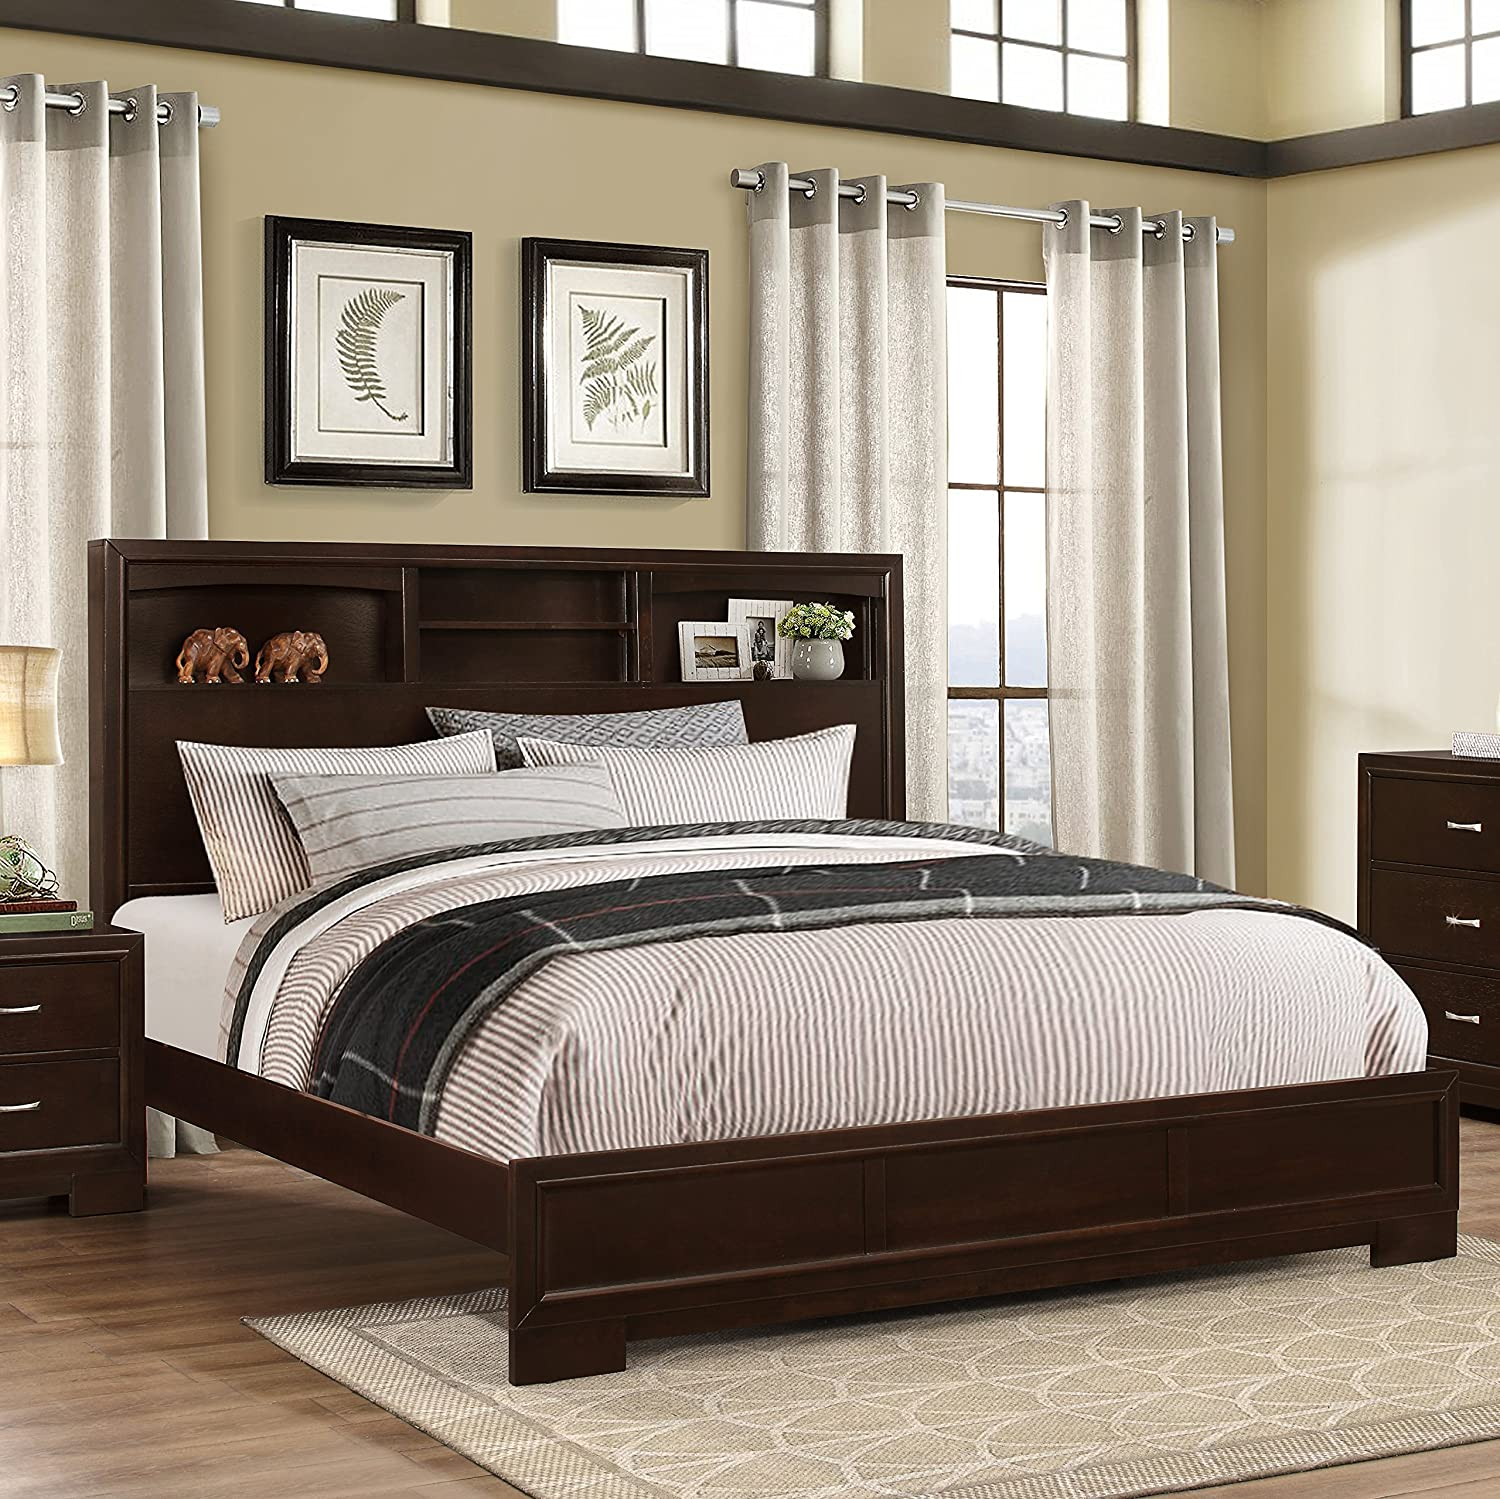 Amazoncom Roundhill Furniture Montana Modern 4Piece Wood Bedroom